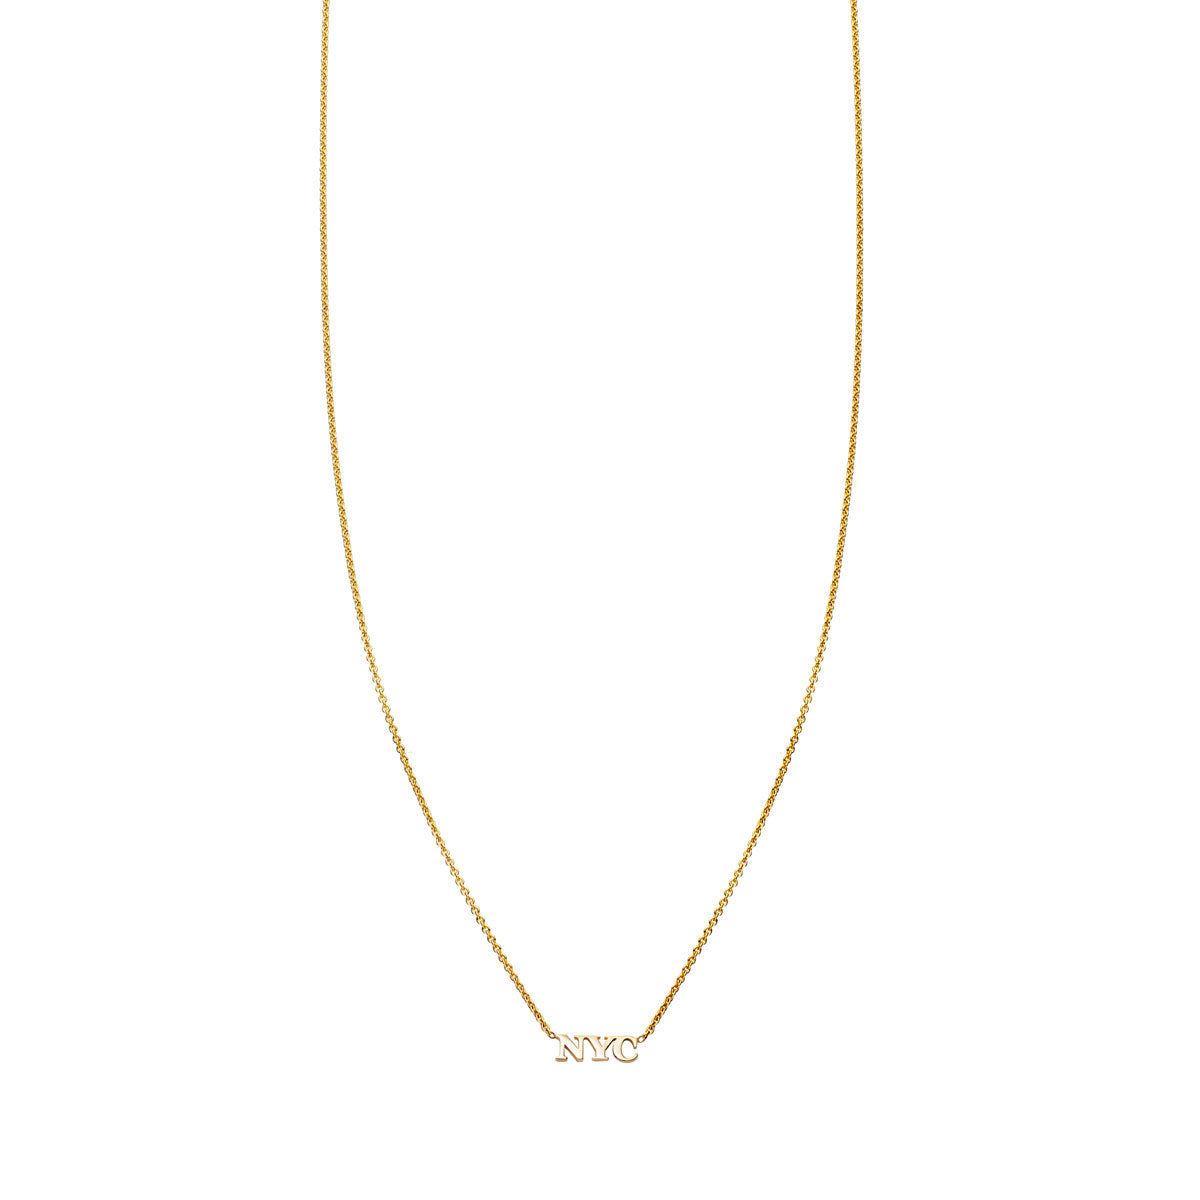 Image of Gold NYC Necklace